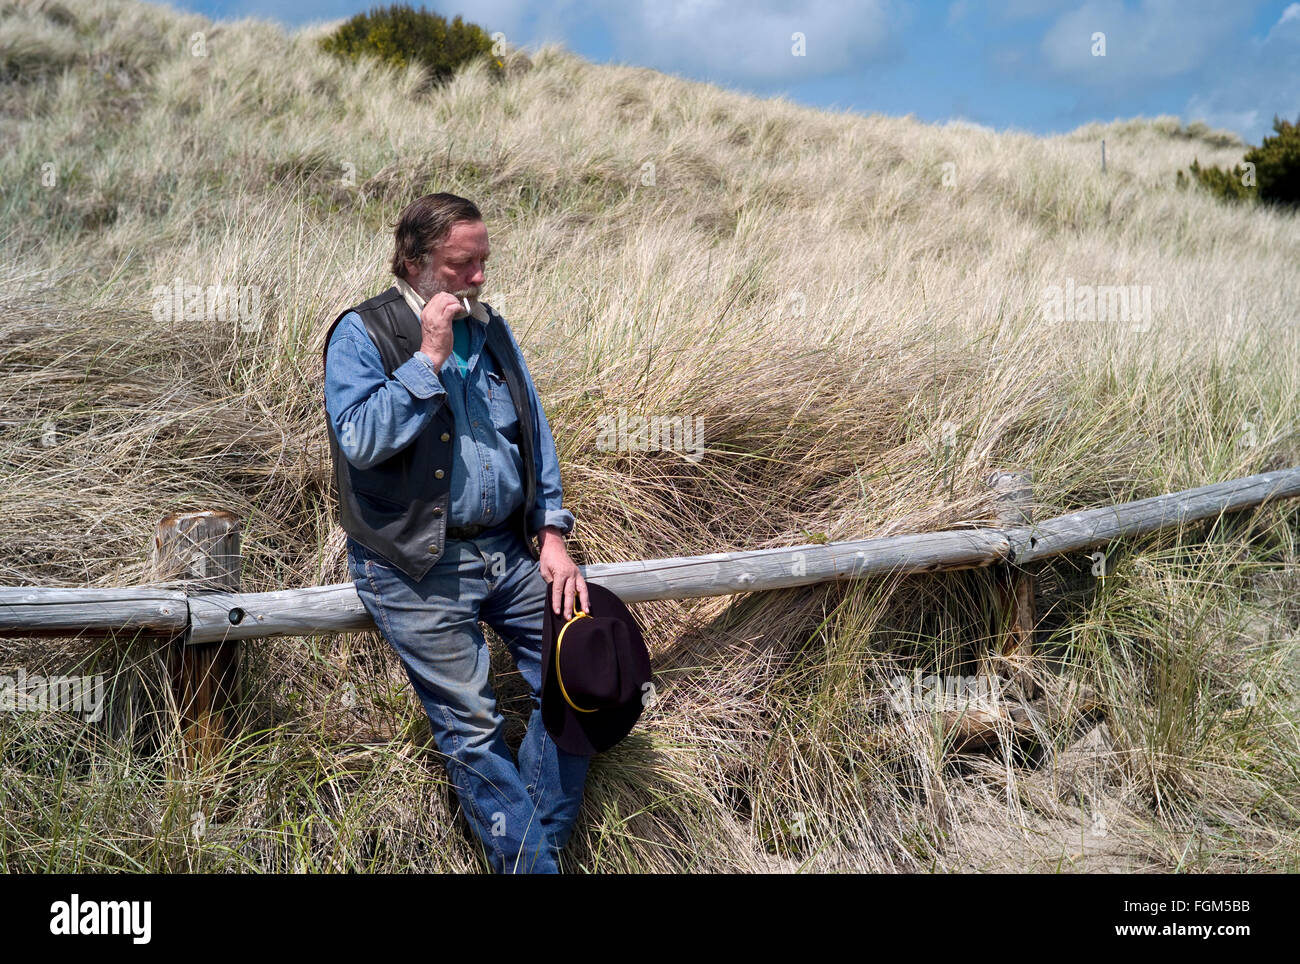 Man smoking his cigaret at the trailhead. Addiction to cigarets are too strong, the worst adiction there is on earth. - Stock Image